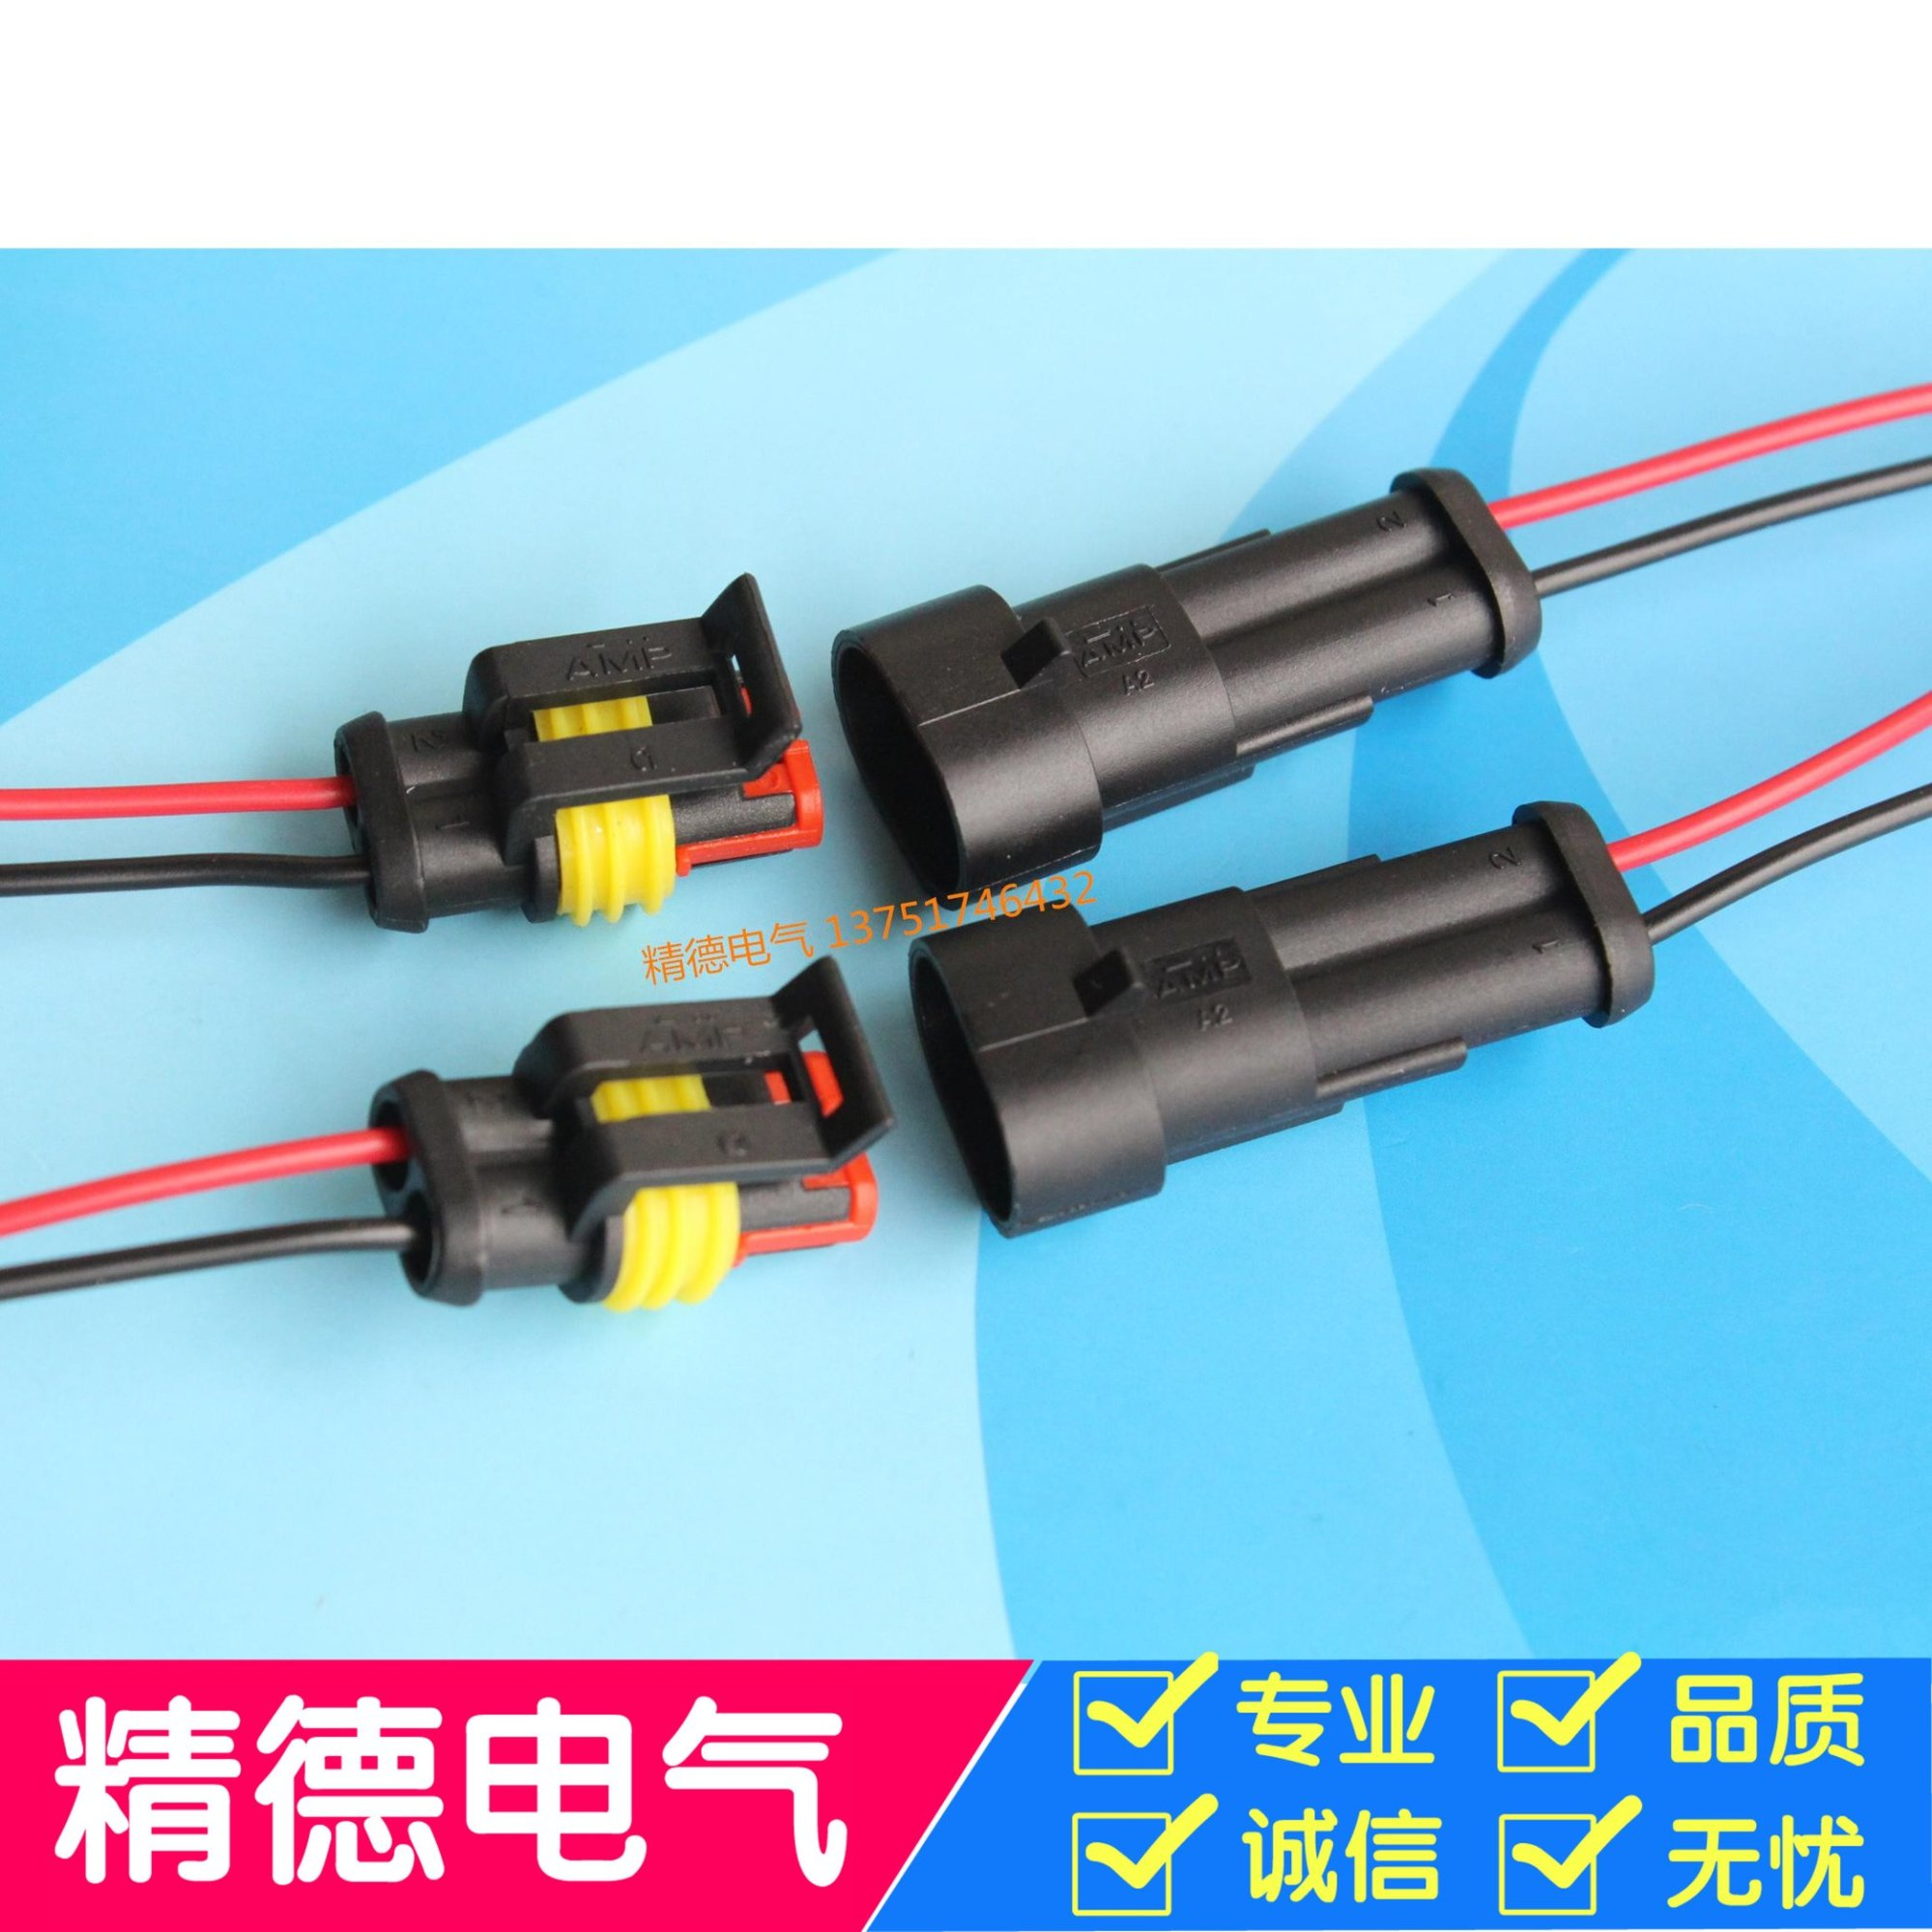 hight resolution of automotive waterproof connector connector amp plug socket male female terminal block wire harness connector